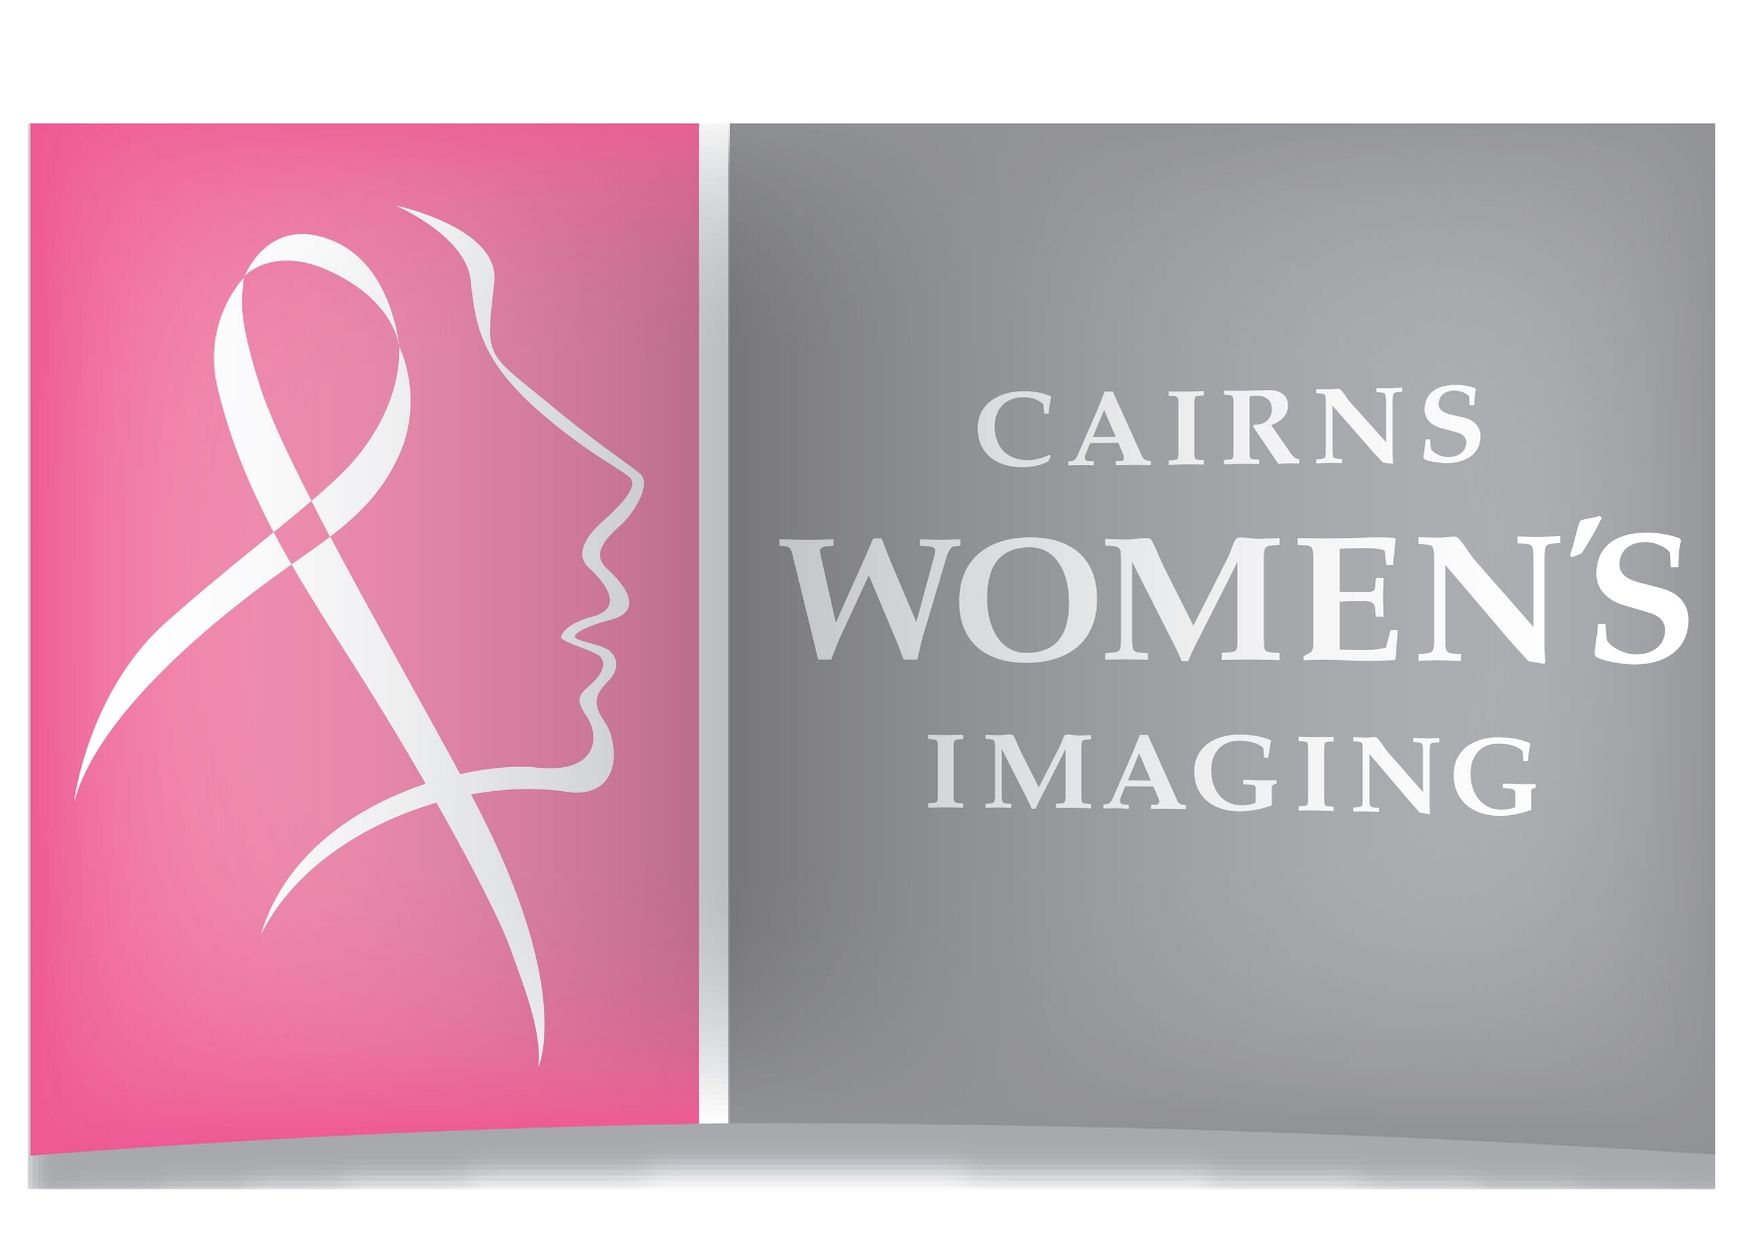 Cairns Radiology & Women's Imaging